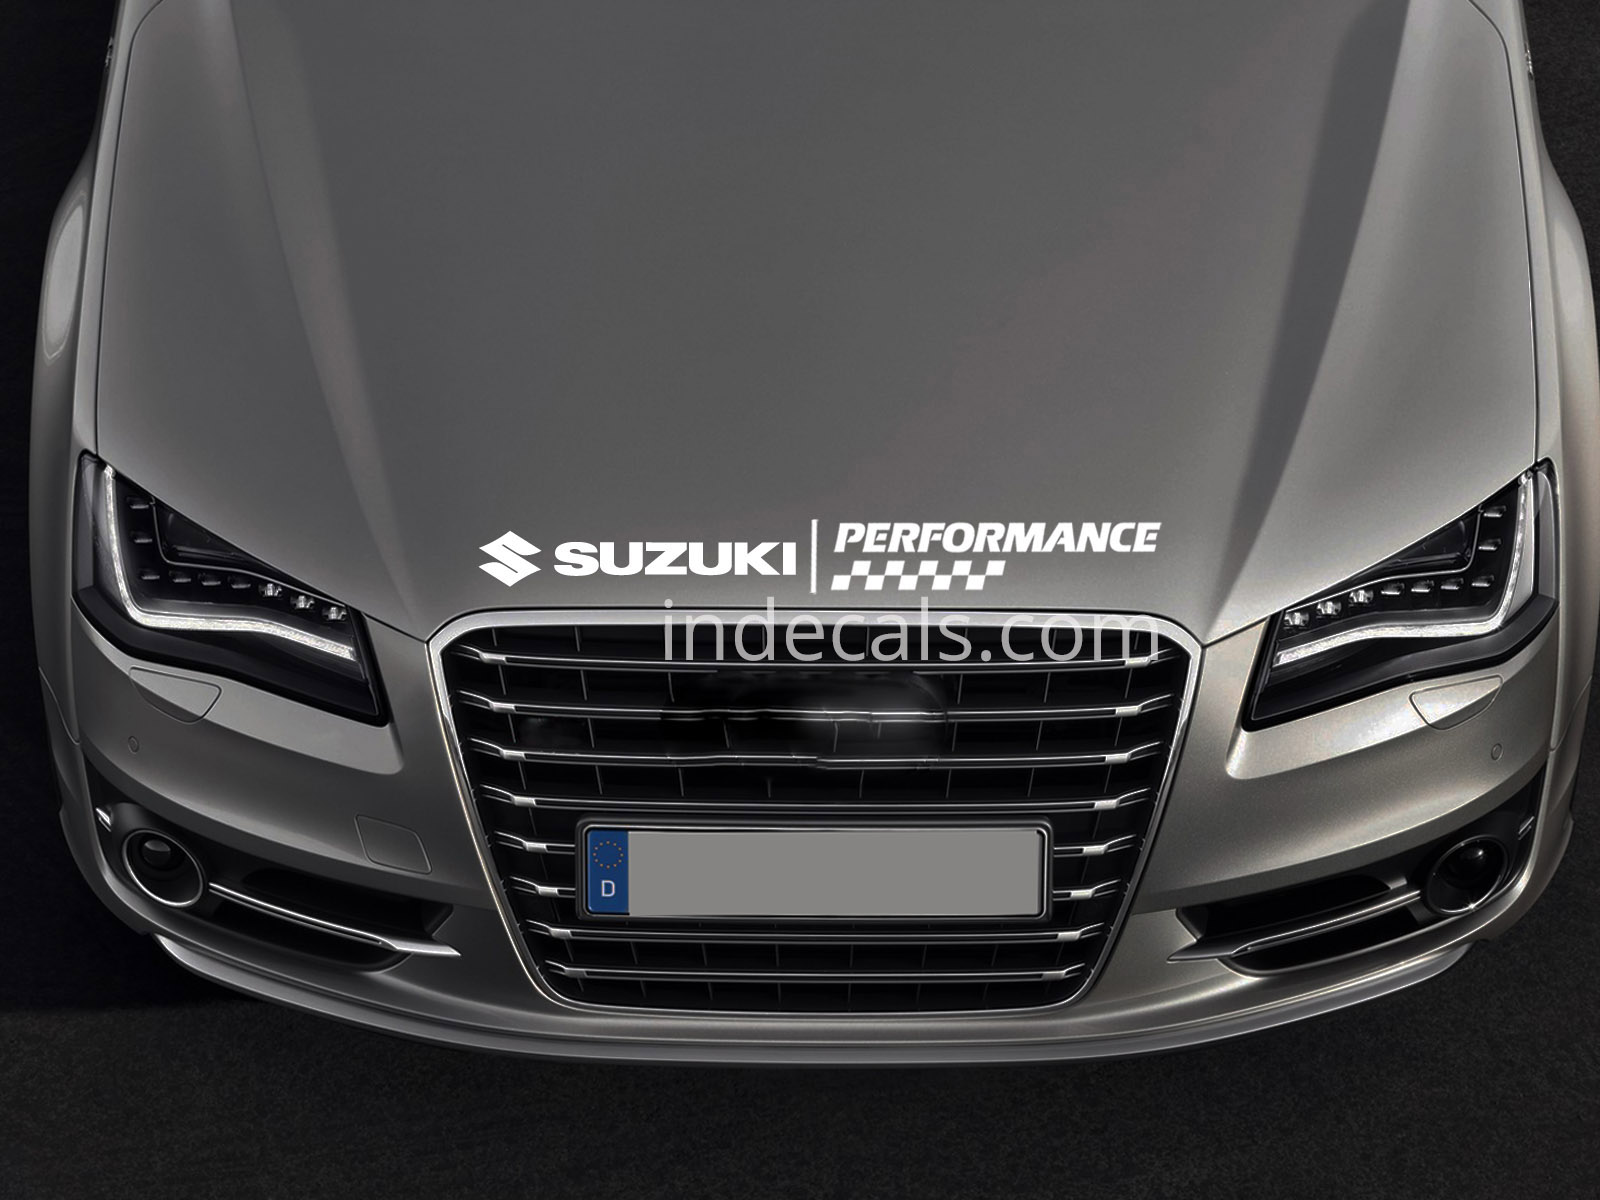 1 x Suzuki Peformance Sticker for Bonnet - White